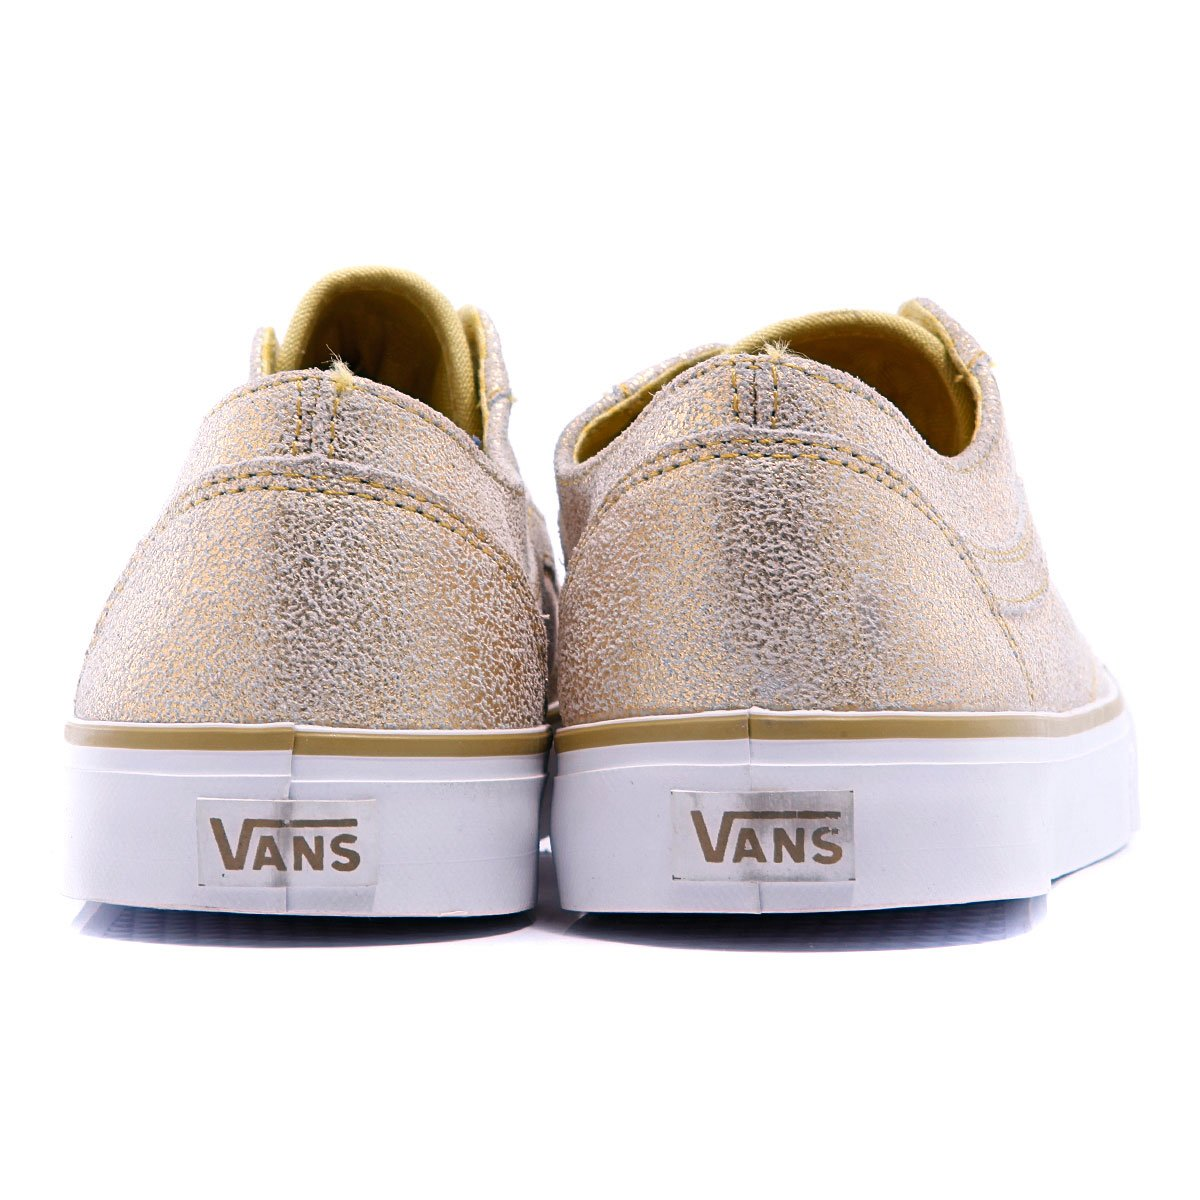 vans old skool lo pro cracked gold